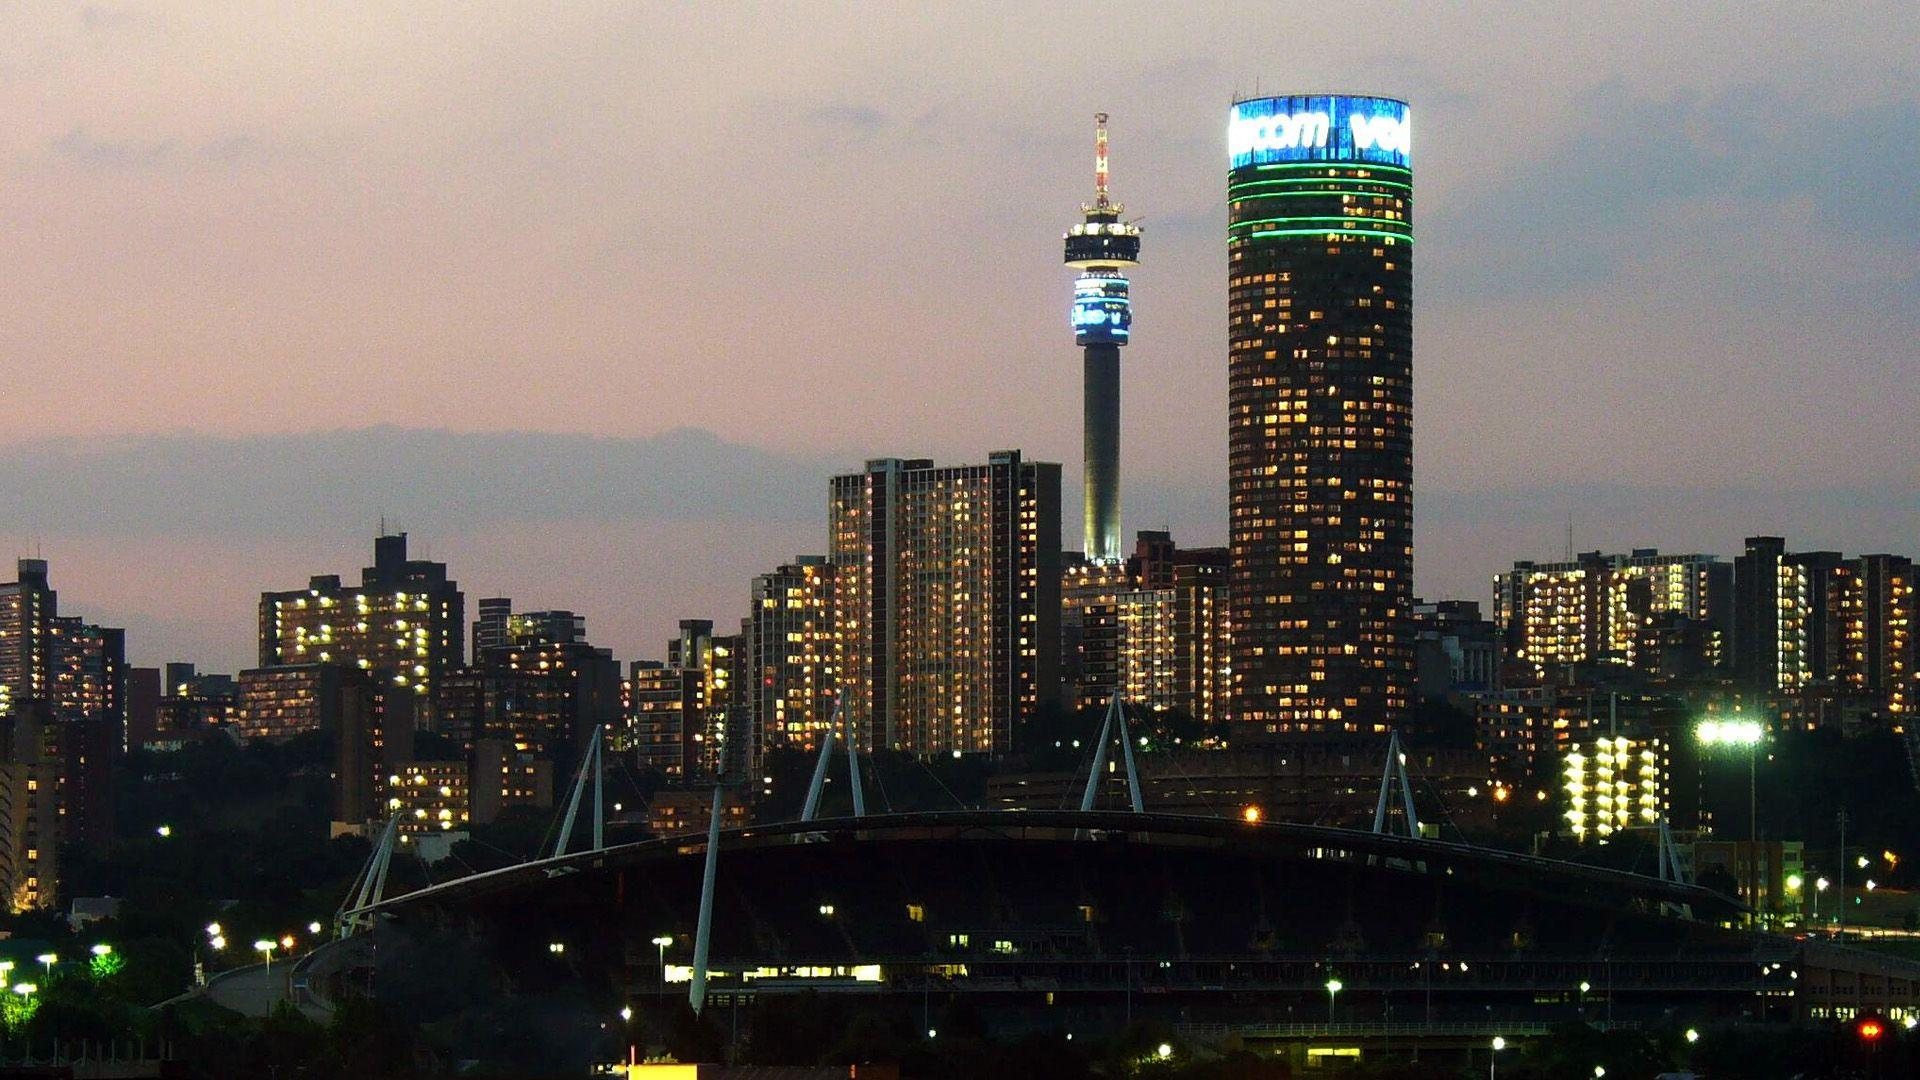 For Your Desktop: Johannesburg Wallpapers, 45 Top Quality